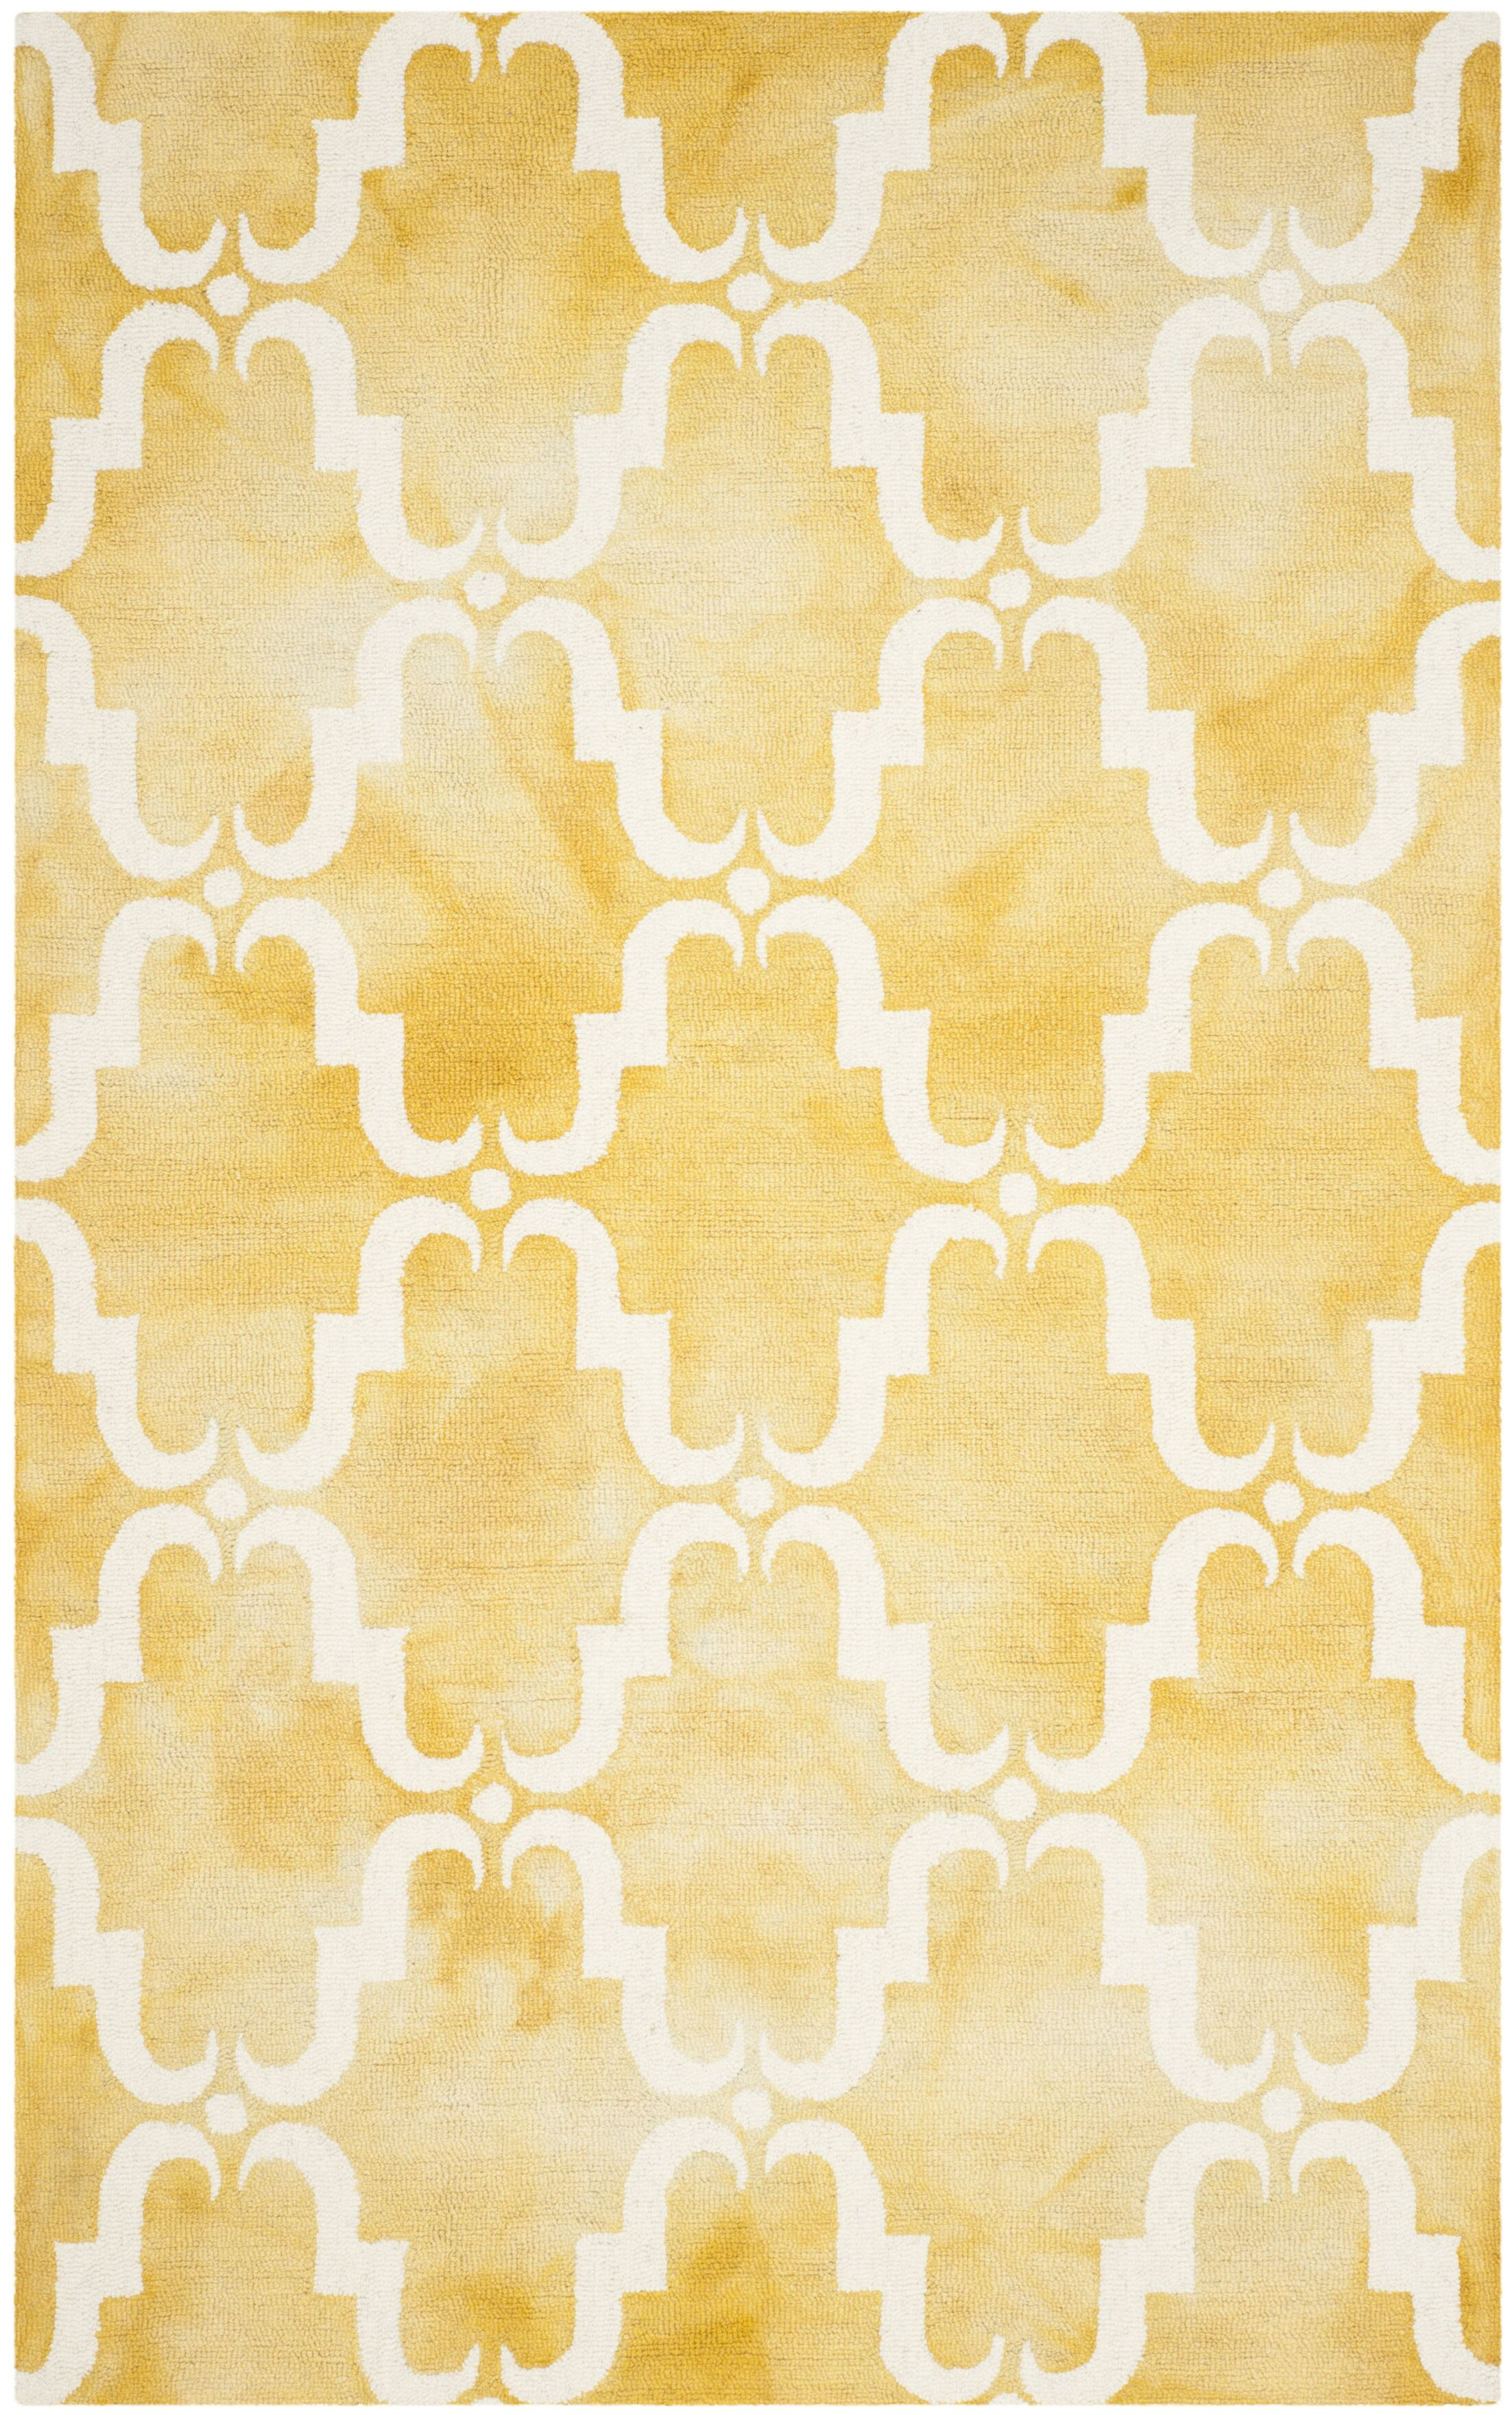 Hand-Tufted Gold/Ivory Area Rug Rug Size: Round 7'